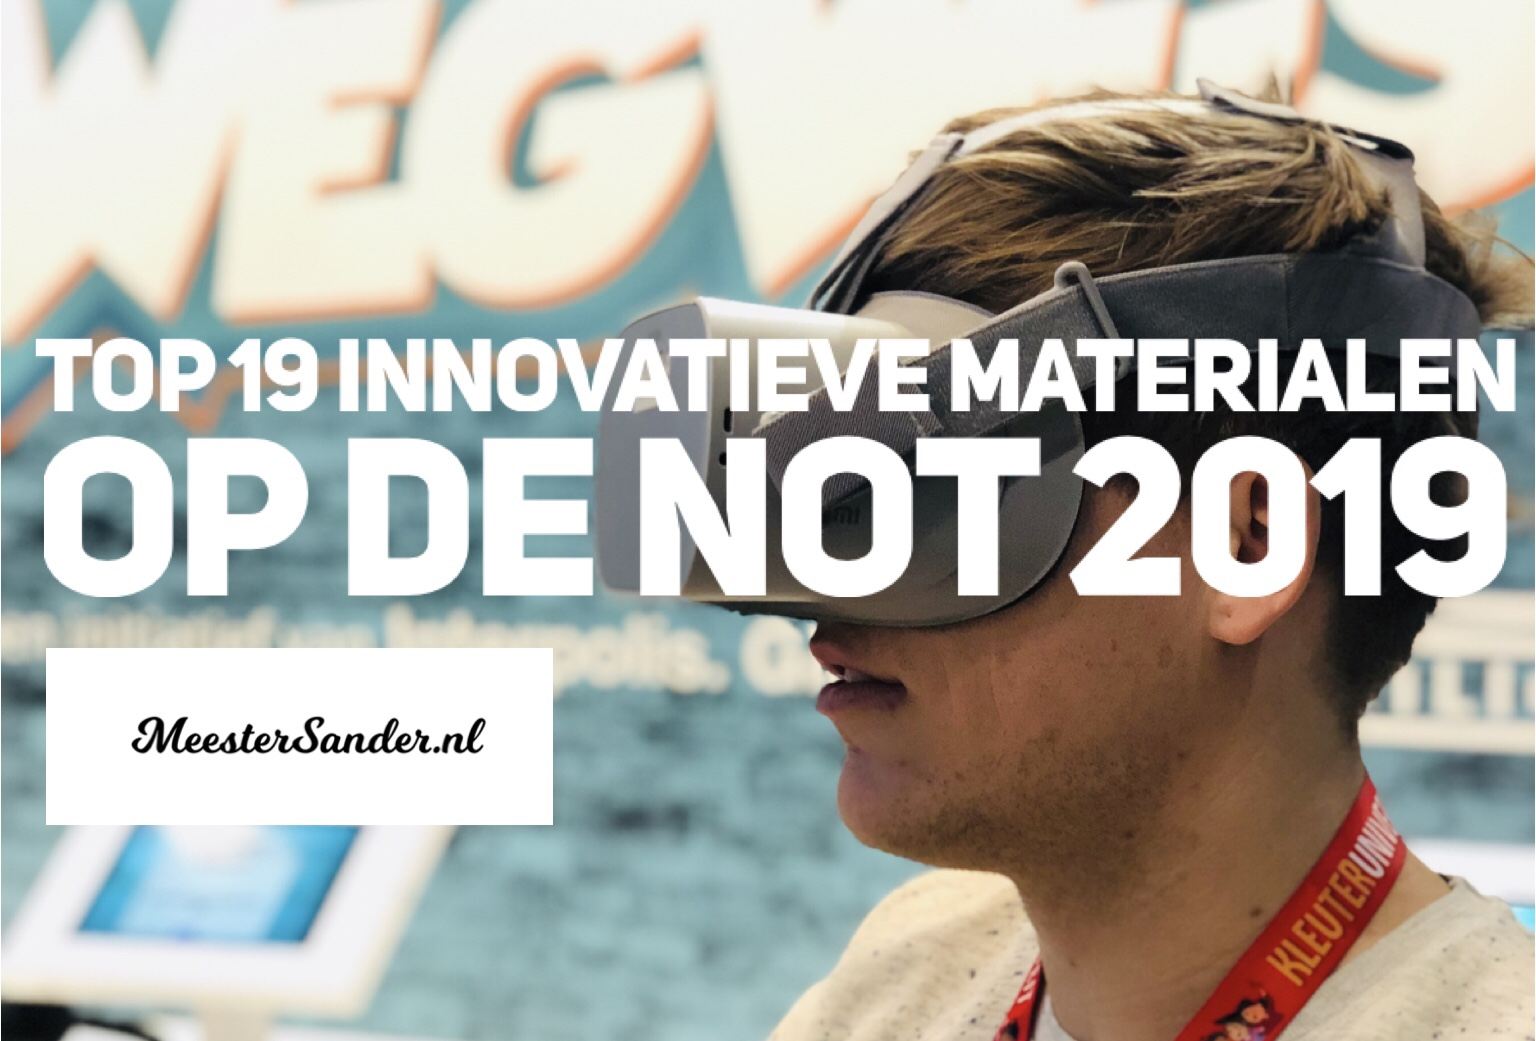 top 19 innovatieve materialen op de NOT 2019